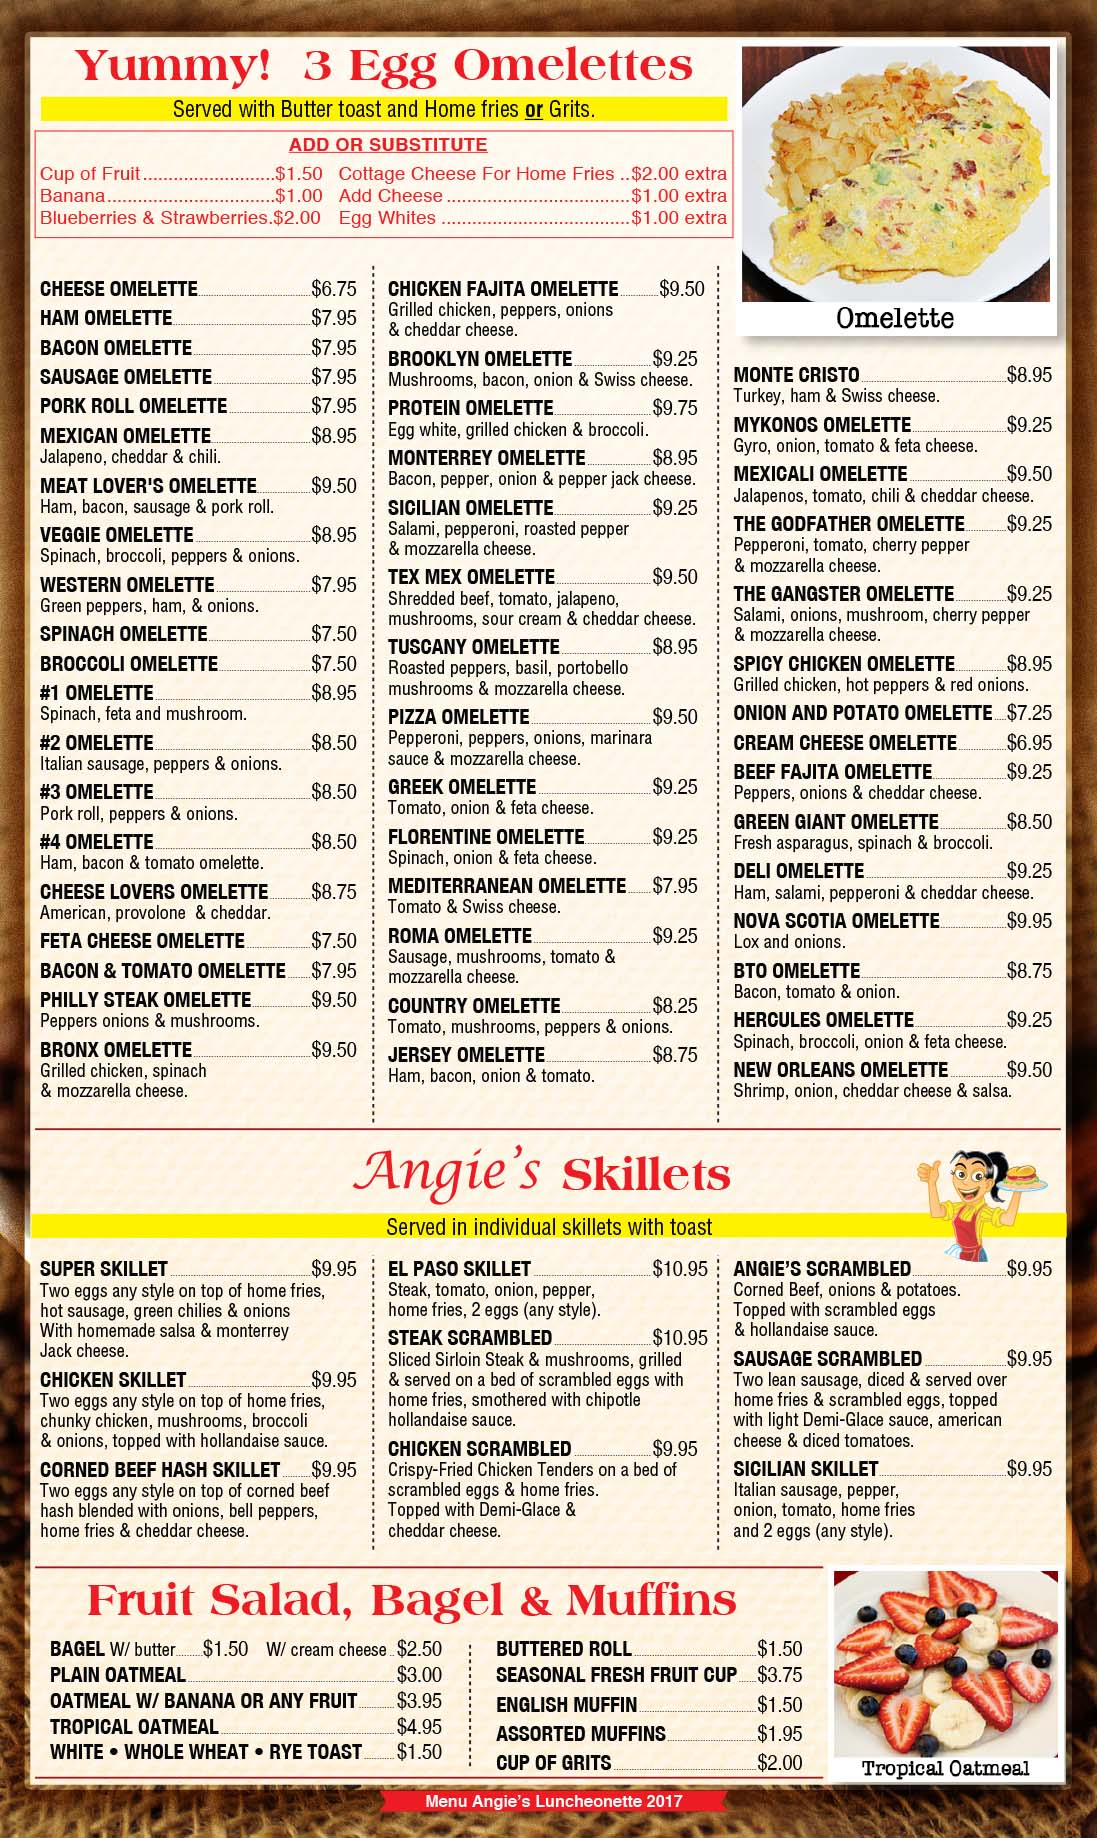 Angies Luncheonette Menu Page 2